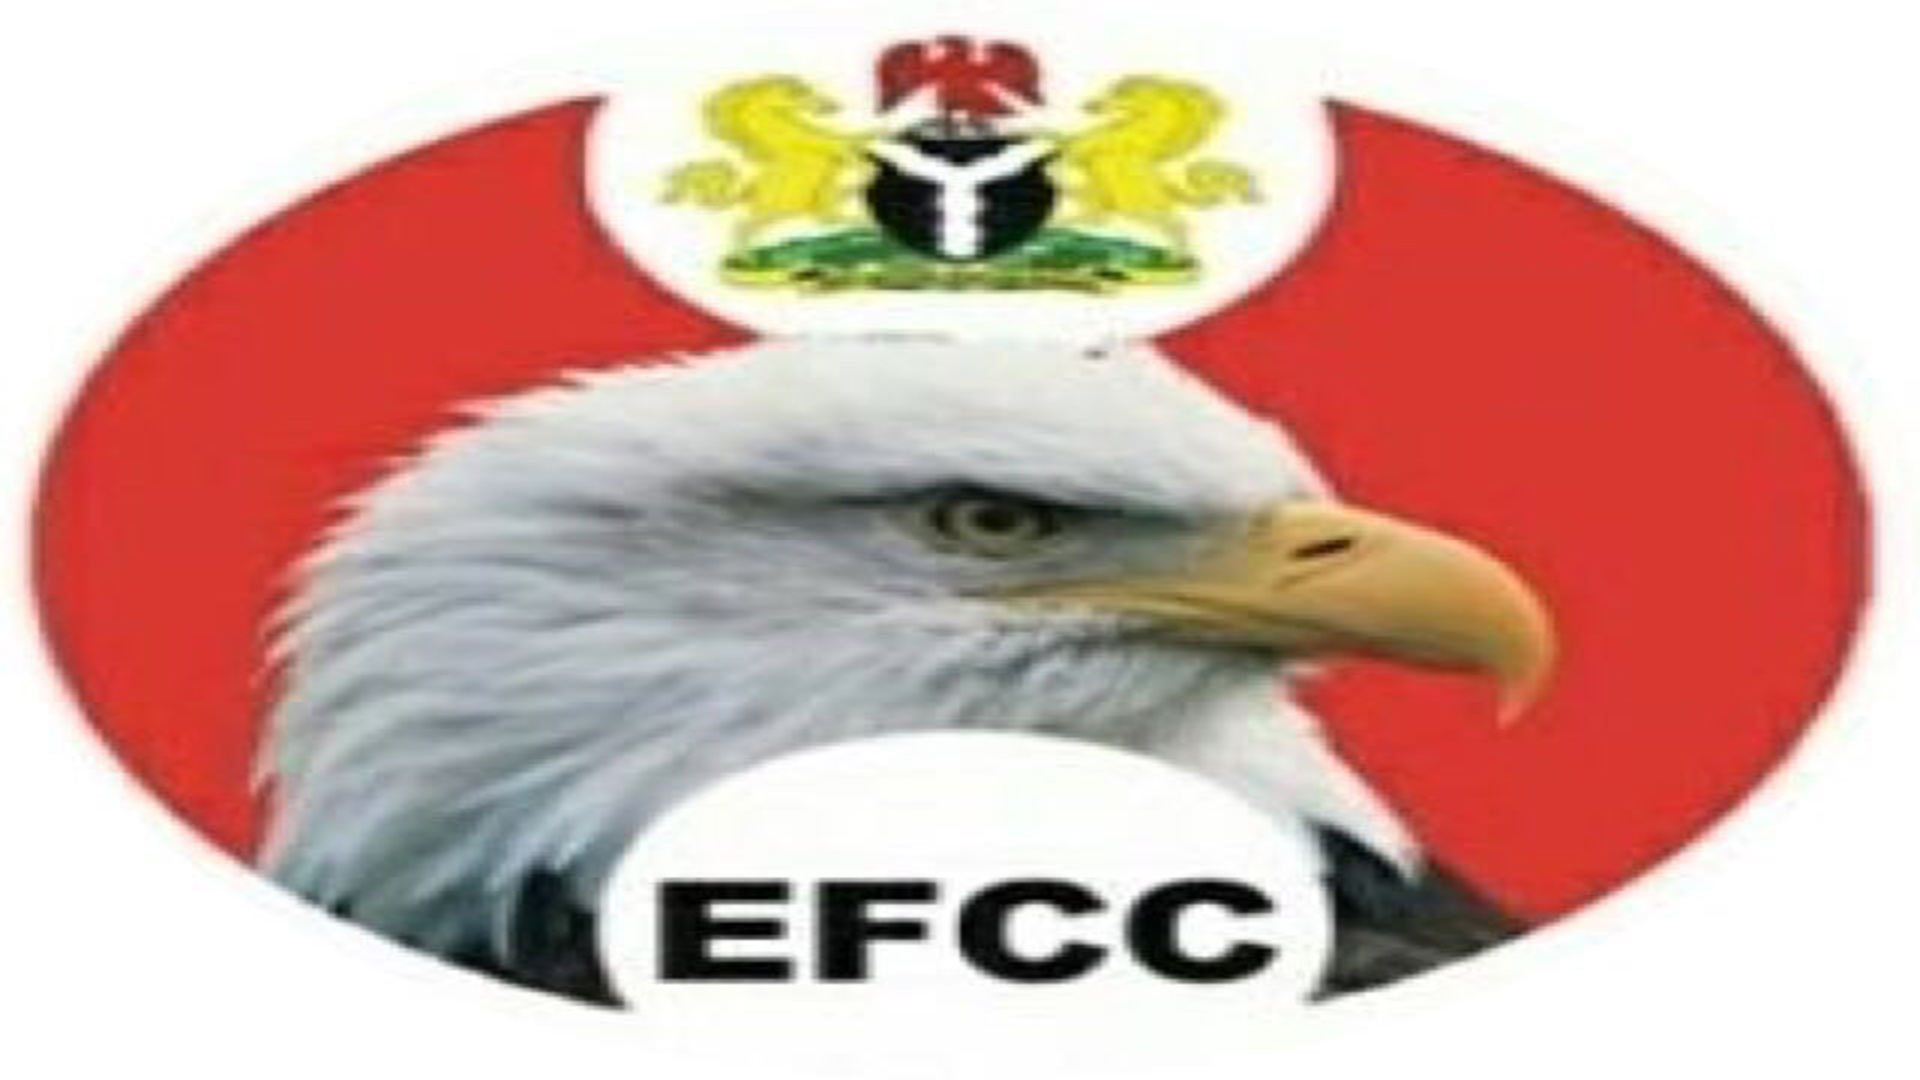 Cyber crime in South East becoming alarming, says EFCC